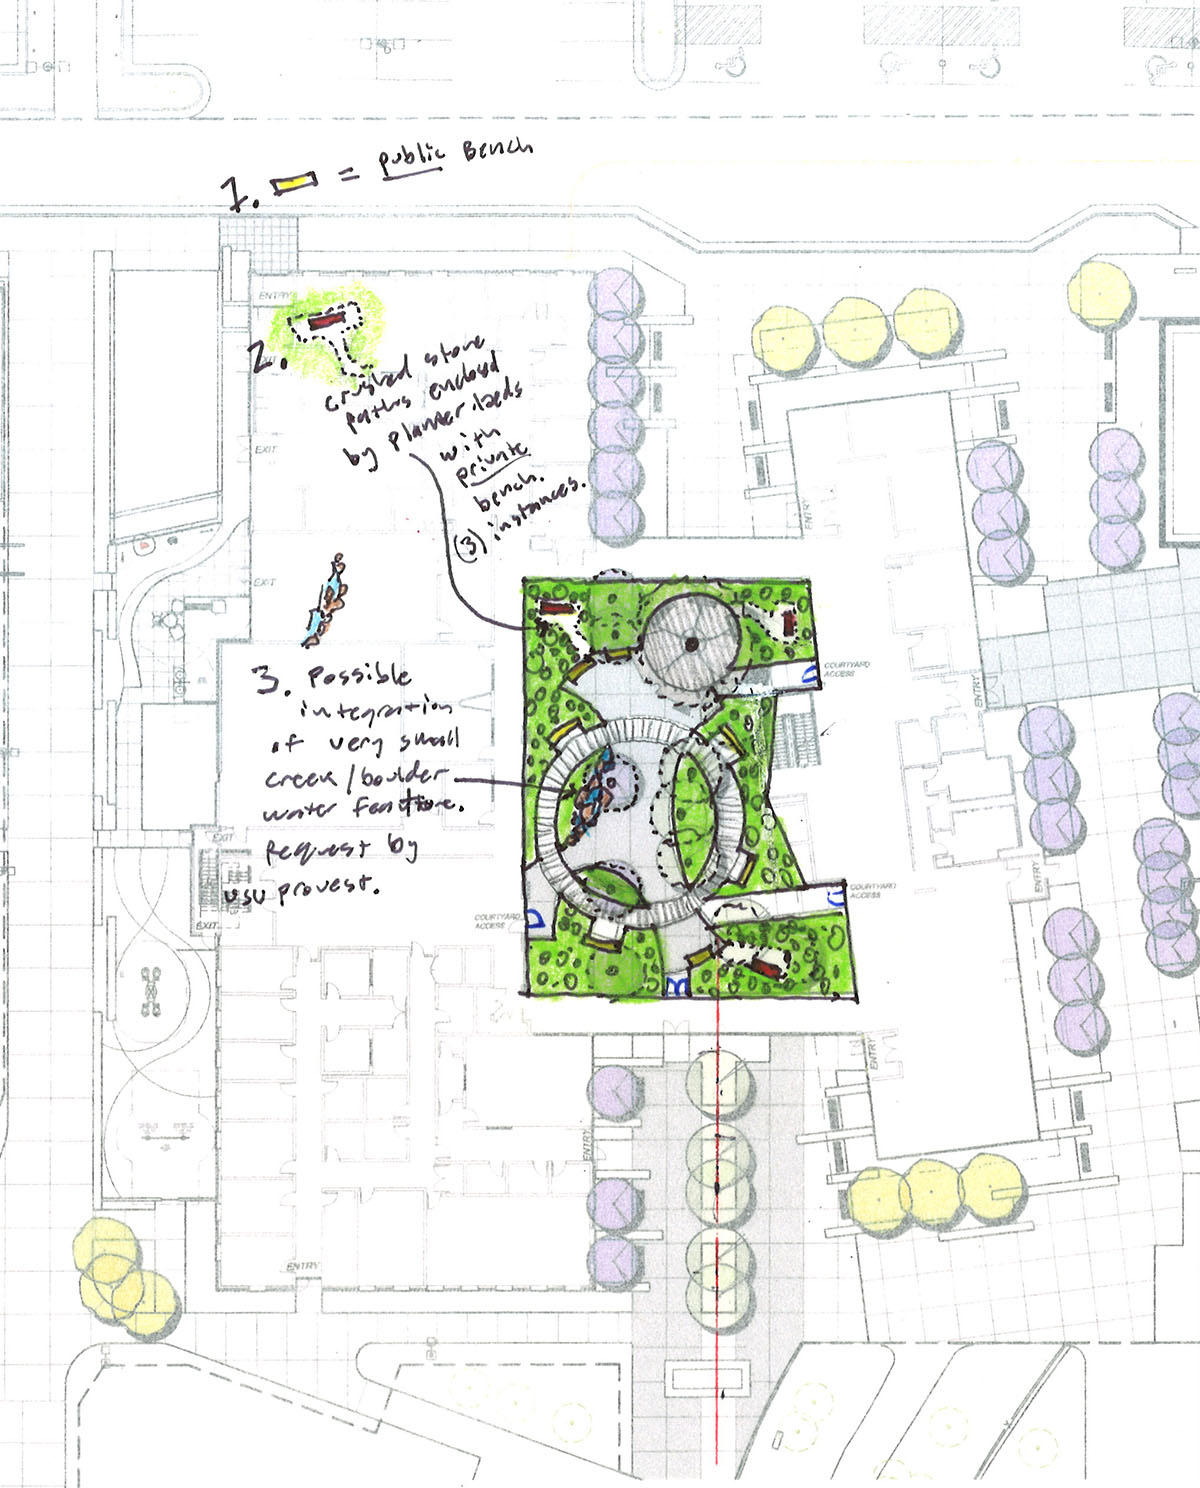 Diagram of design plans for the healing garden courtyard located in the middle of the center for healing.